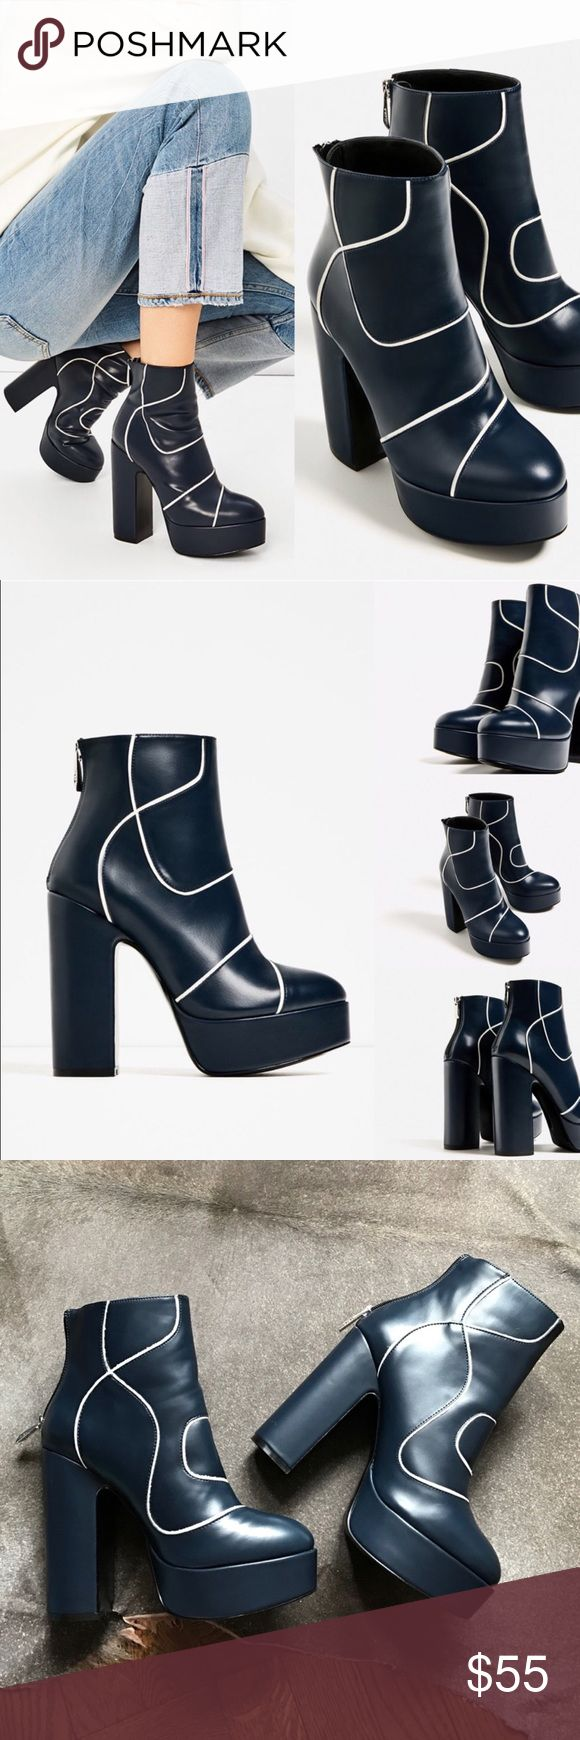 Zara Platform Ankle boots Navy blue with white detail. Brand new with tags in perfect condition! Zara Shoes Heeled Boots